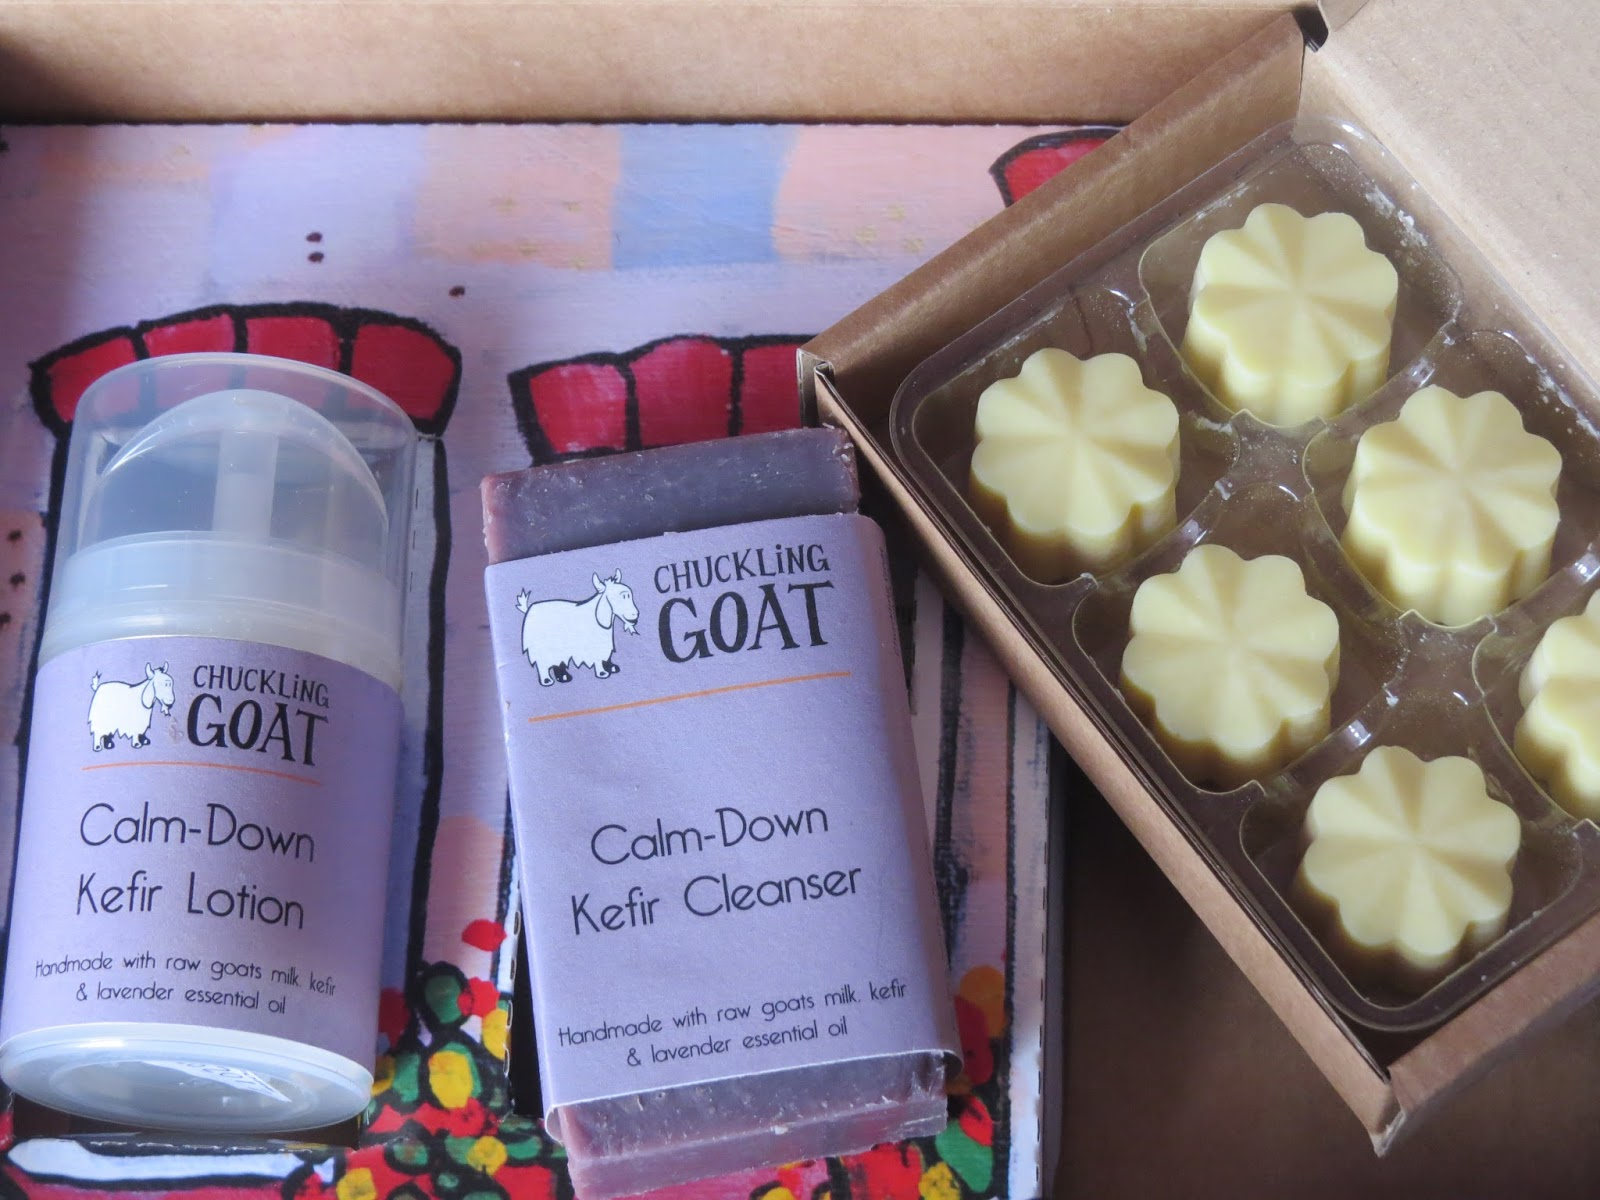 Beauty Chuckling Goat Calm Down Kefir Toolkit Lotion The Award Winning Is Also Used To Make Handmade Natural Products Which Are Suitable For All Skin Types And Those Who Suffer From Eczema